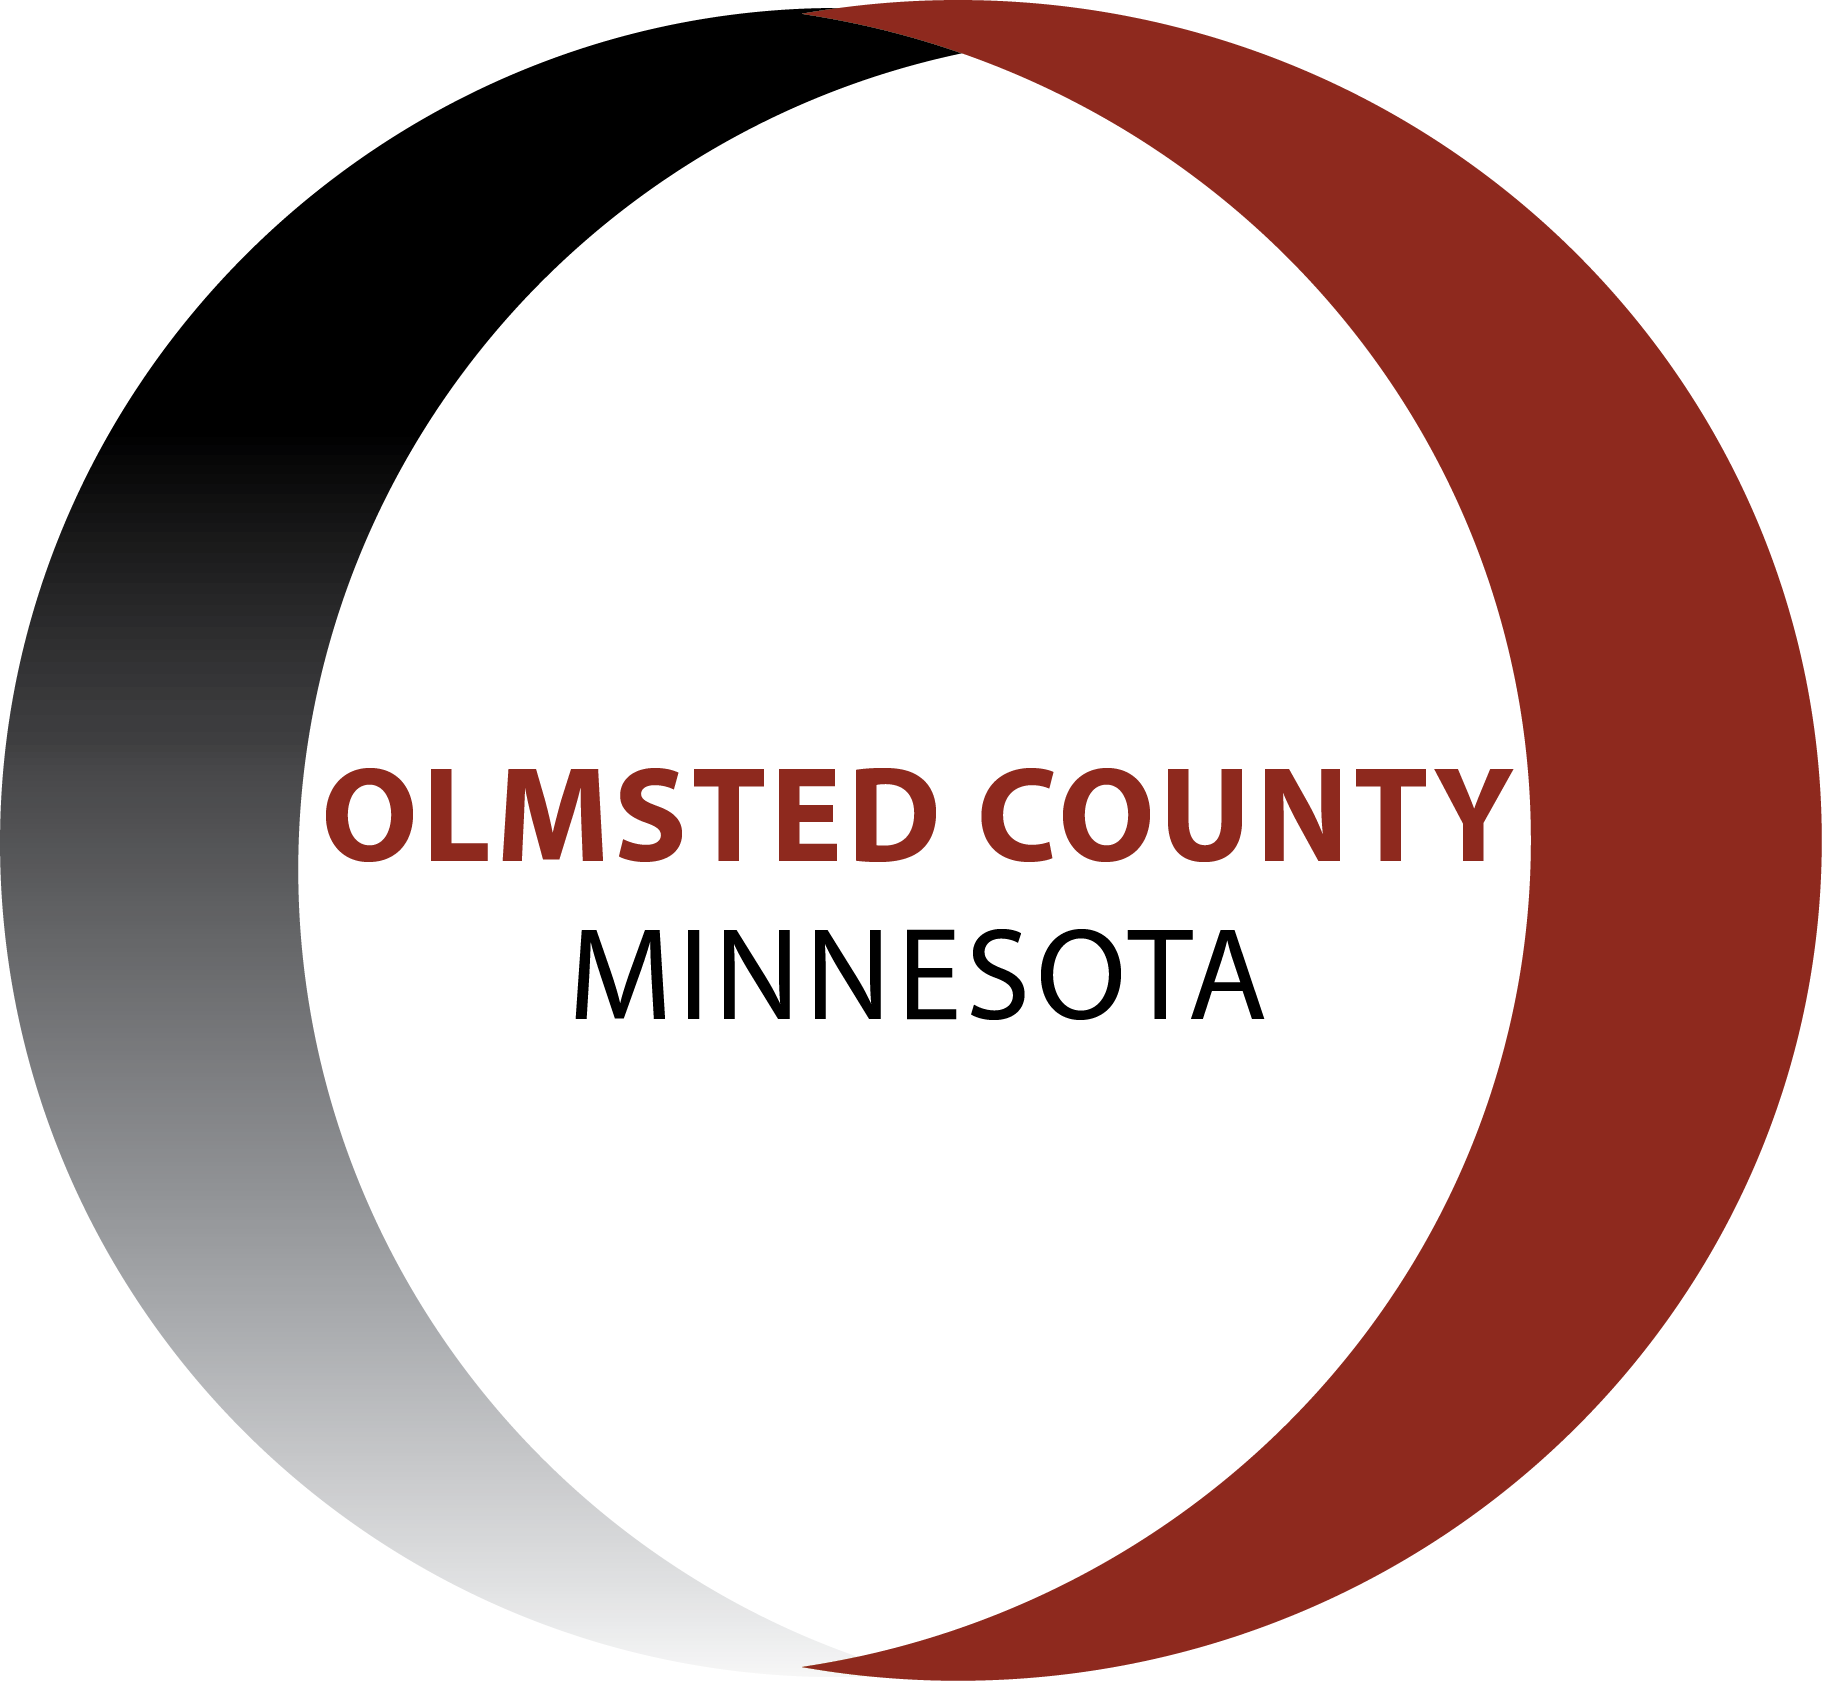 Olmsted County Minnesota Official Website